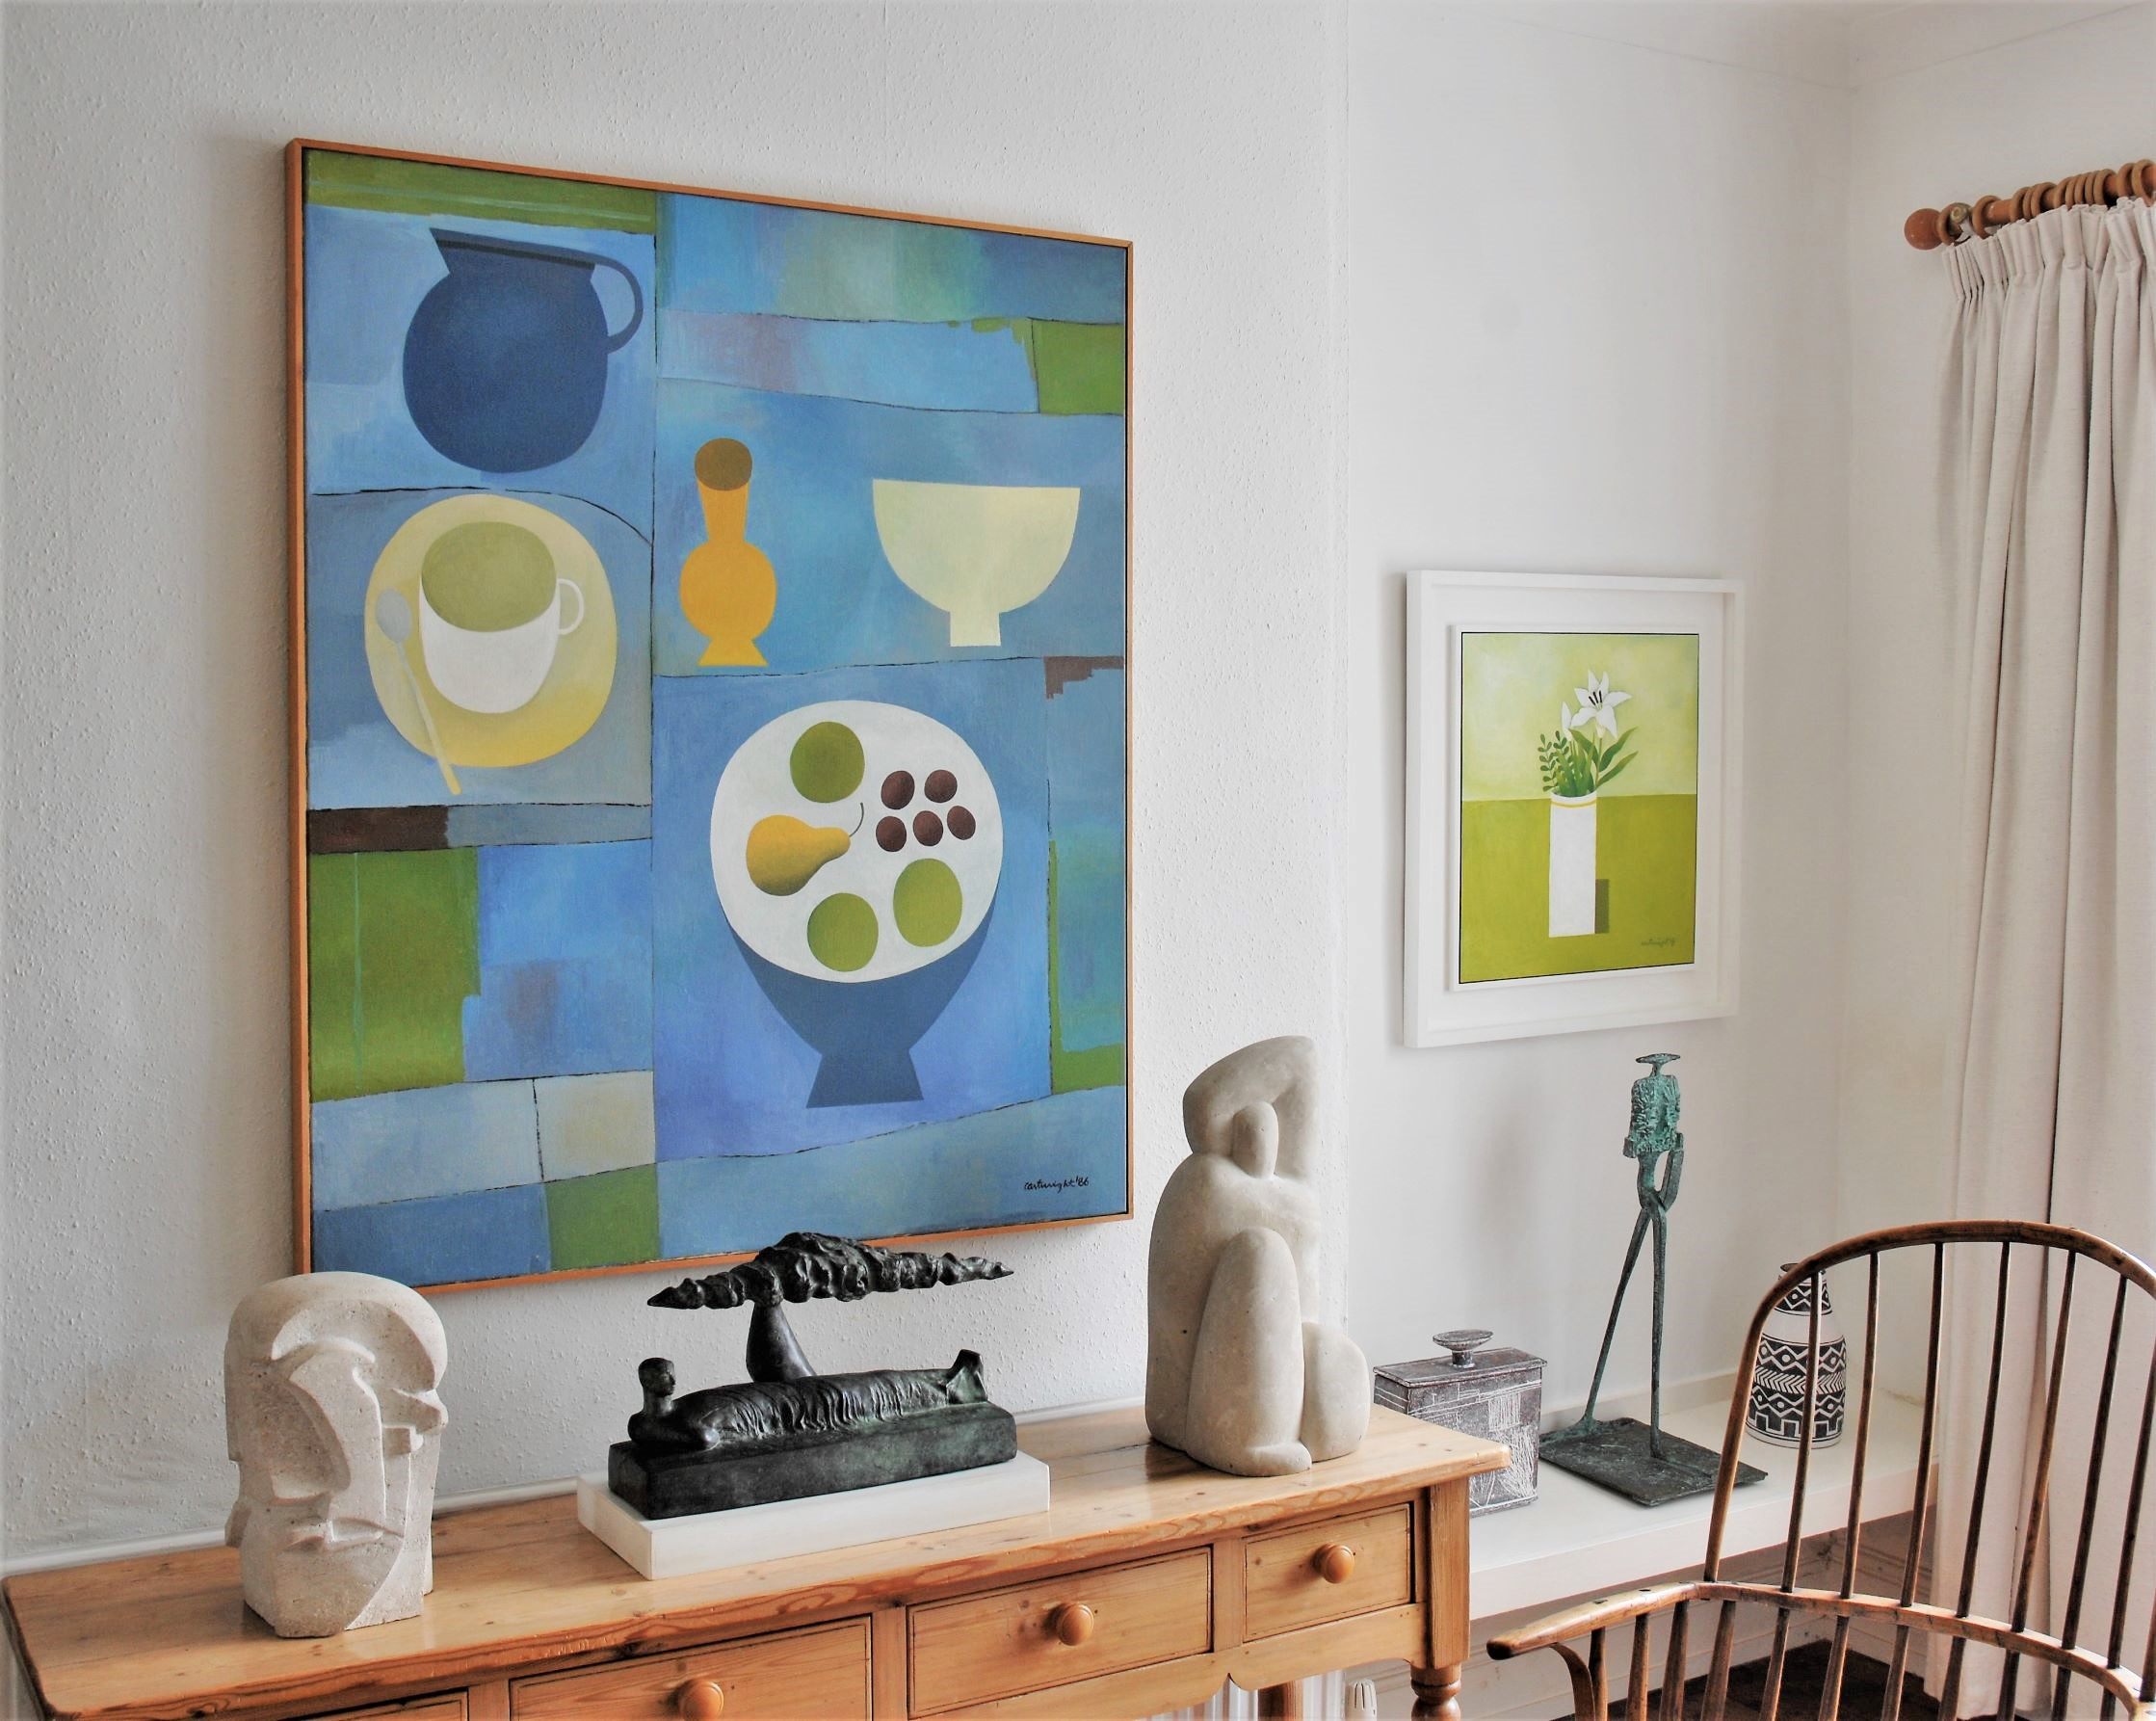 Two original paintings by Reg Cartwright, English Contemporary Still Life and Landscape Painter.